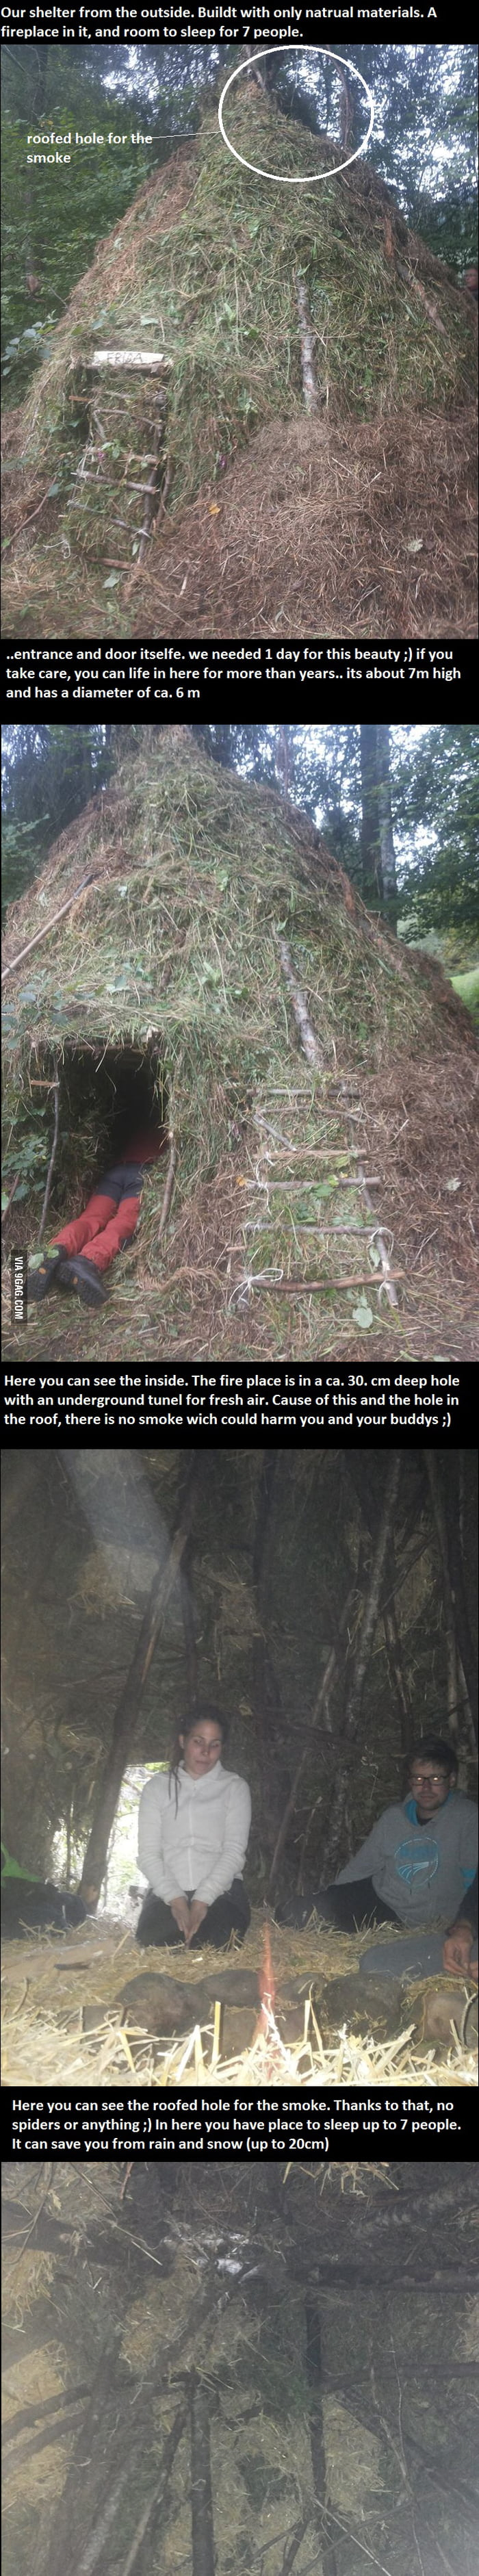 http://img-9gag-fun.9cache.com/photo/adpx4VV_700b.jpg